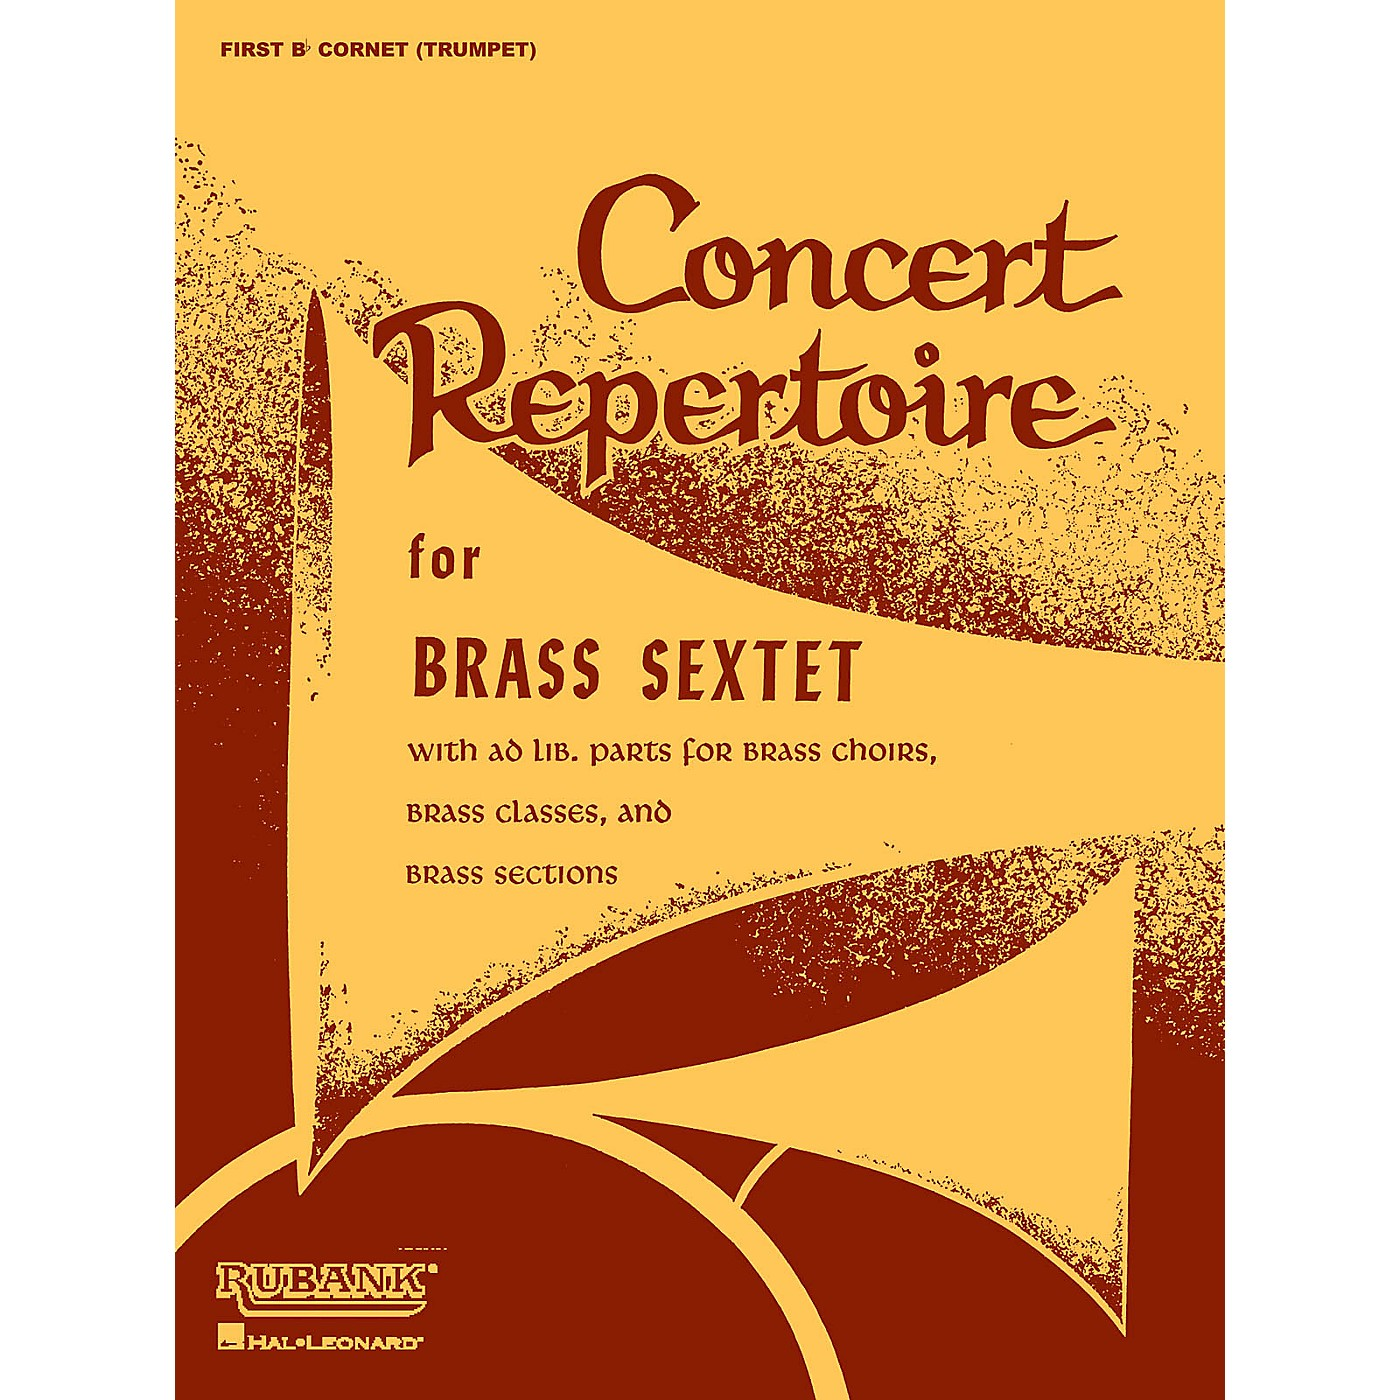 Rubank Publications Concert Repertoire for Brass Sextet (3rd and 4th Cornet/Trumpet (opt.)) Ensemble Collection Series thumbnail